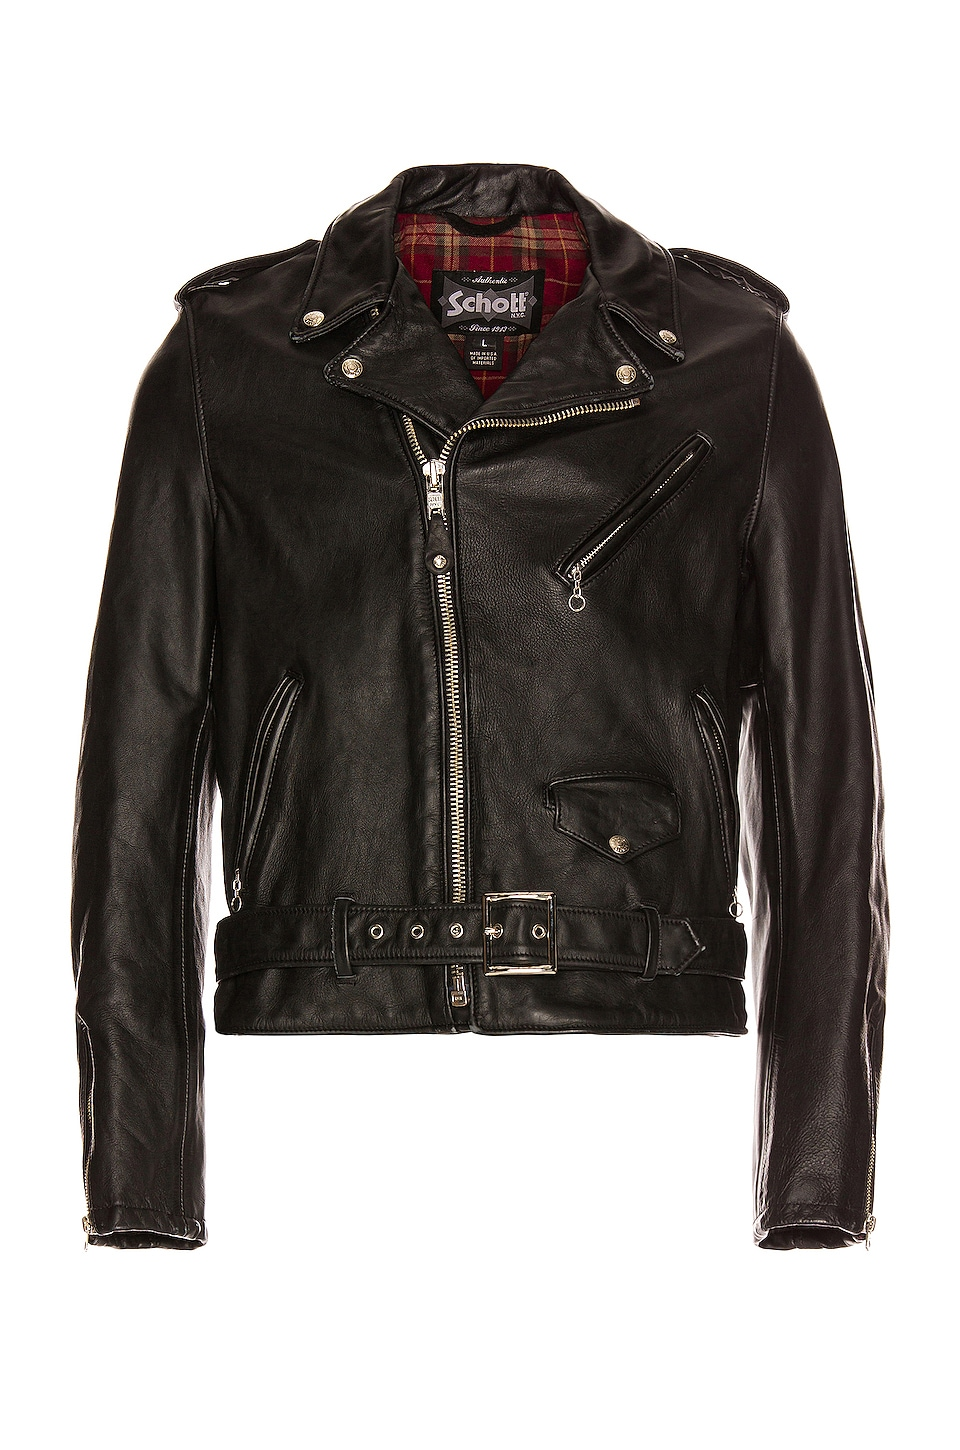 Schott Vintage Fit Moto Jacket in Black